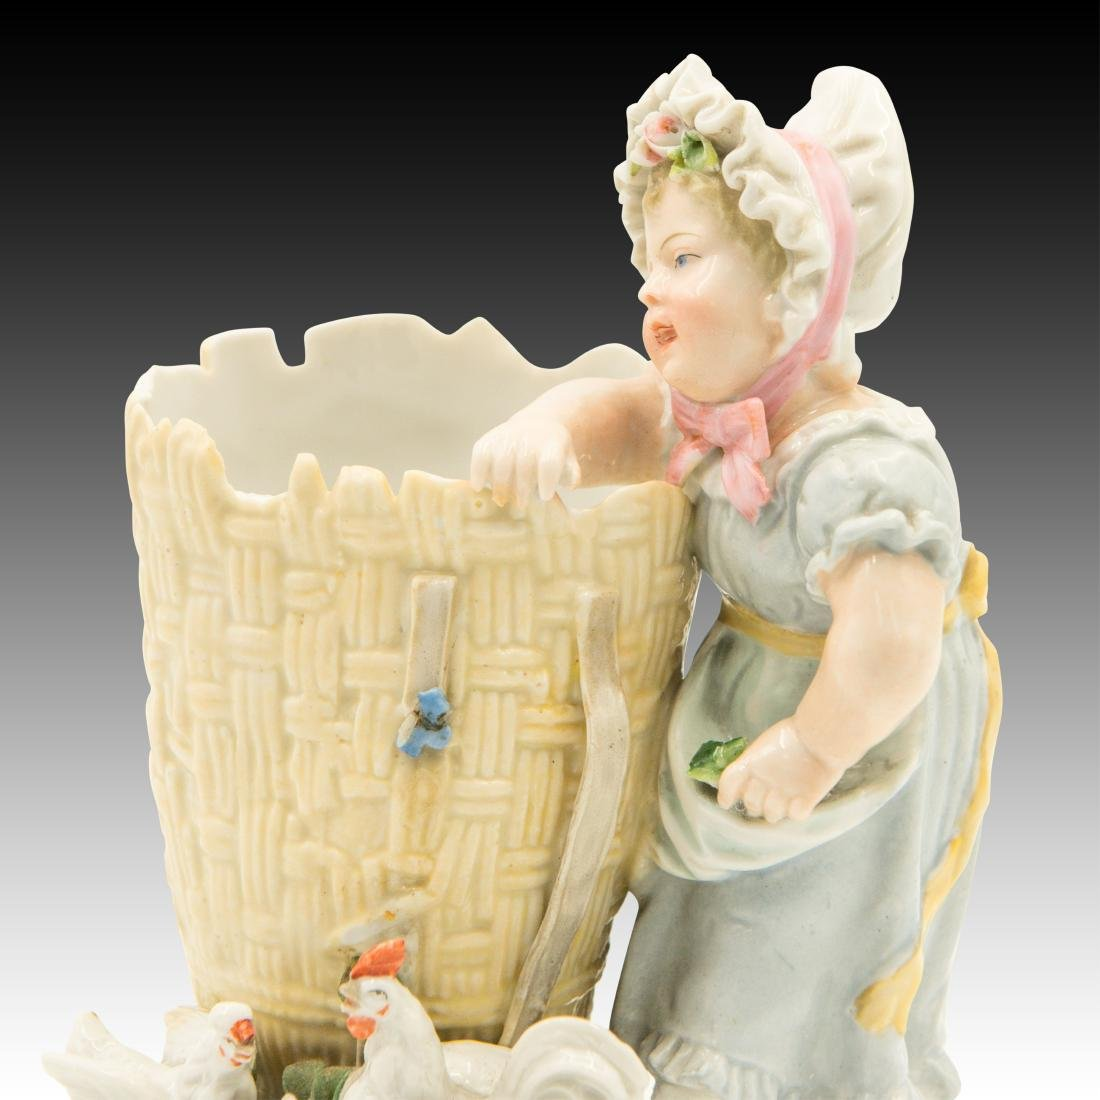 Young Girl Leaning on a Basket Figurine - 5